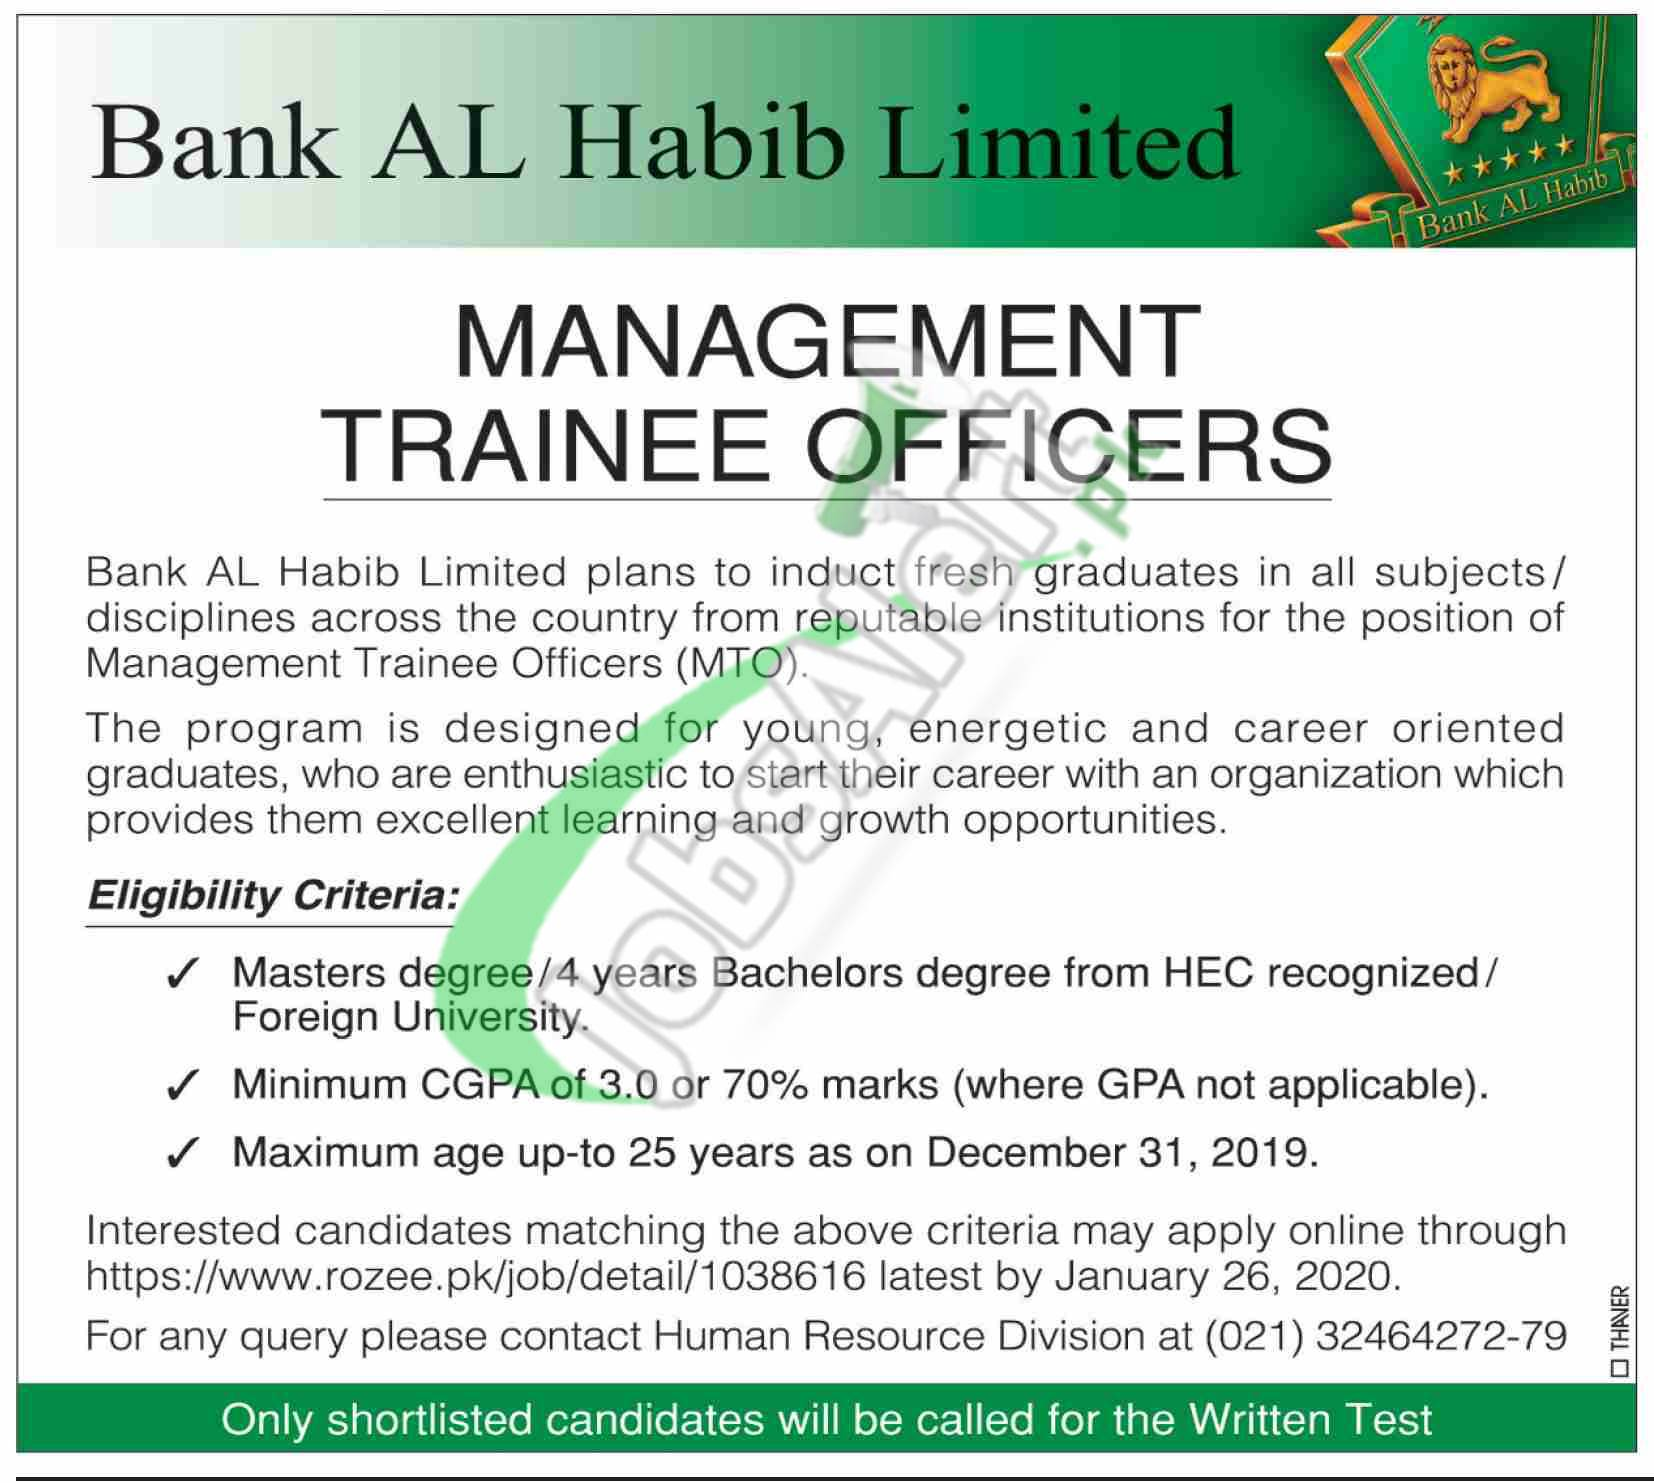 Bank Al Habib Limited Management Trainee Officers